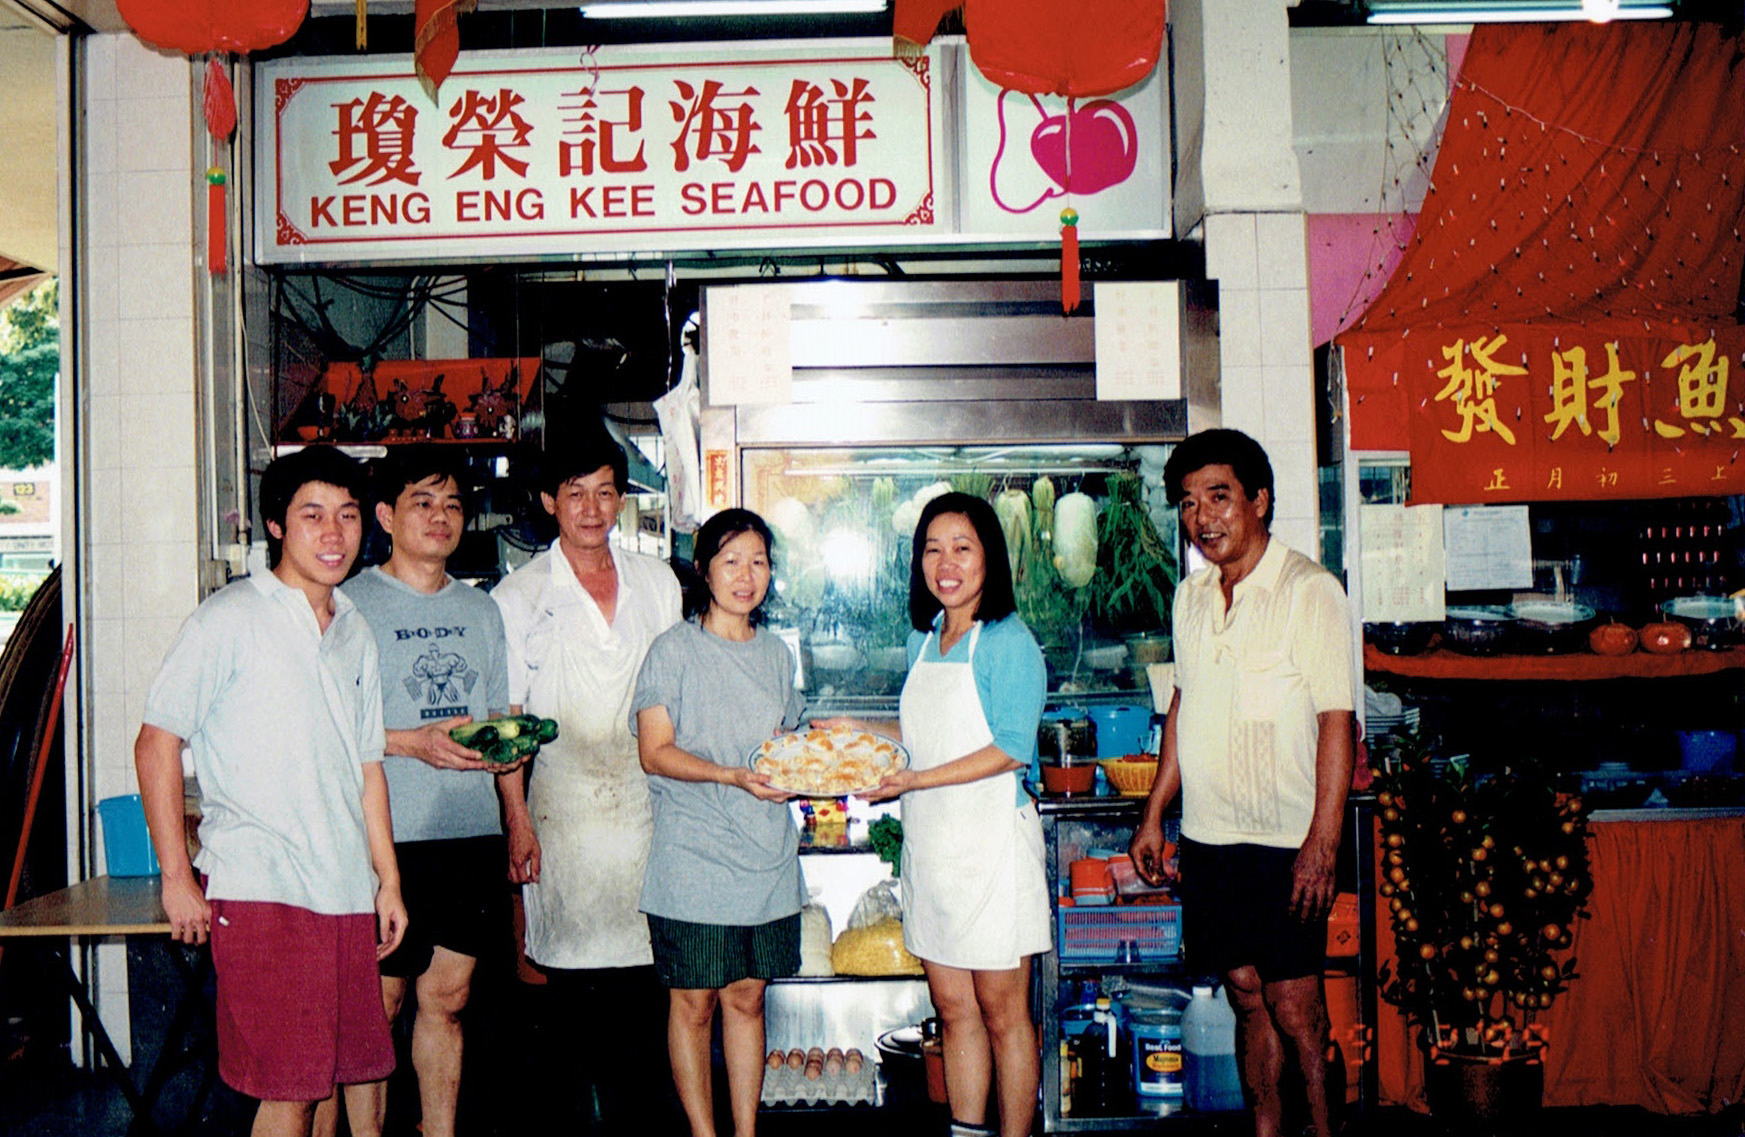 The second and third generation owners of Keng Eng Kee